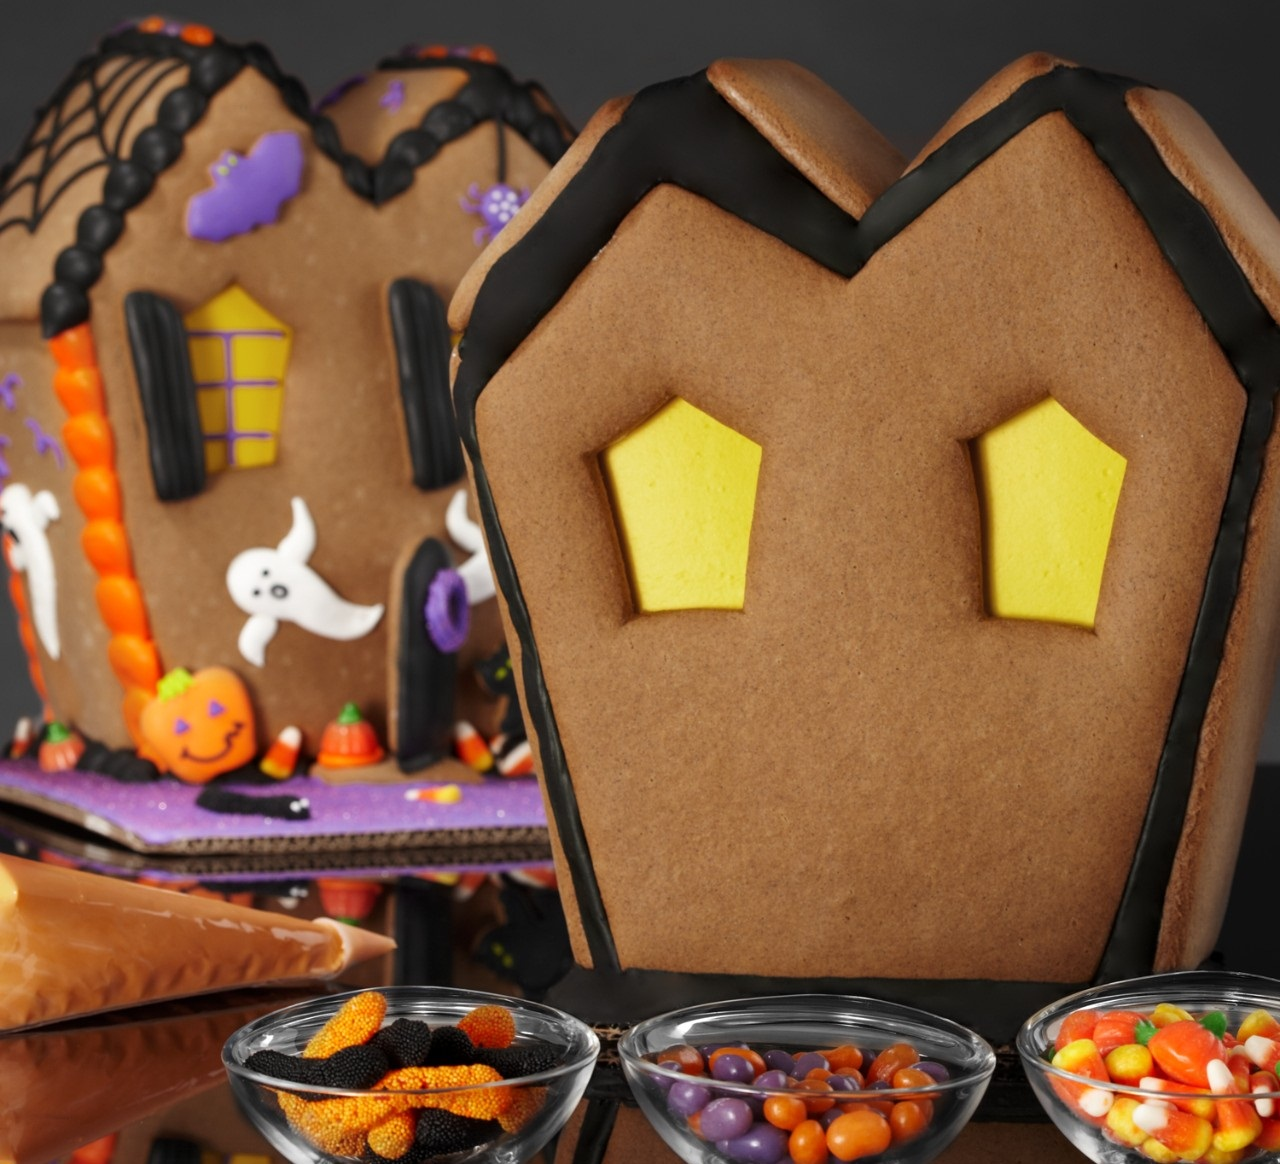 Halloween Gingerbred House from Shari's Berries